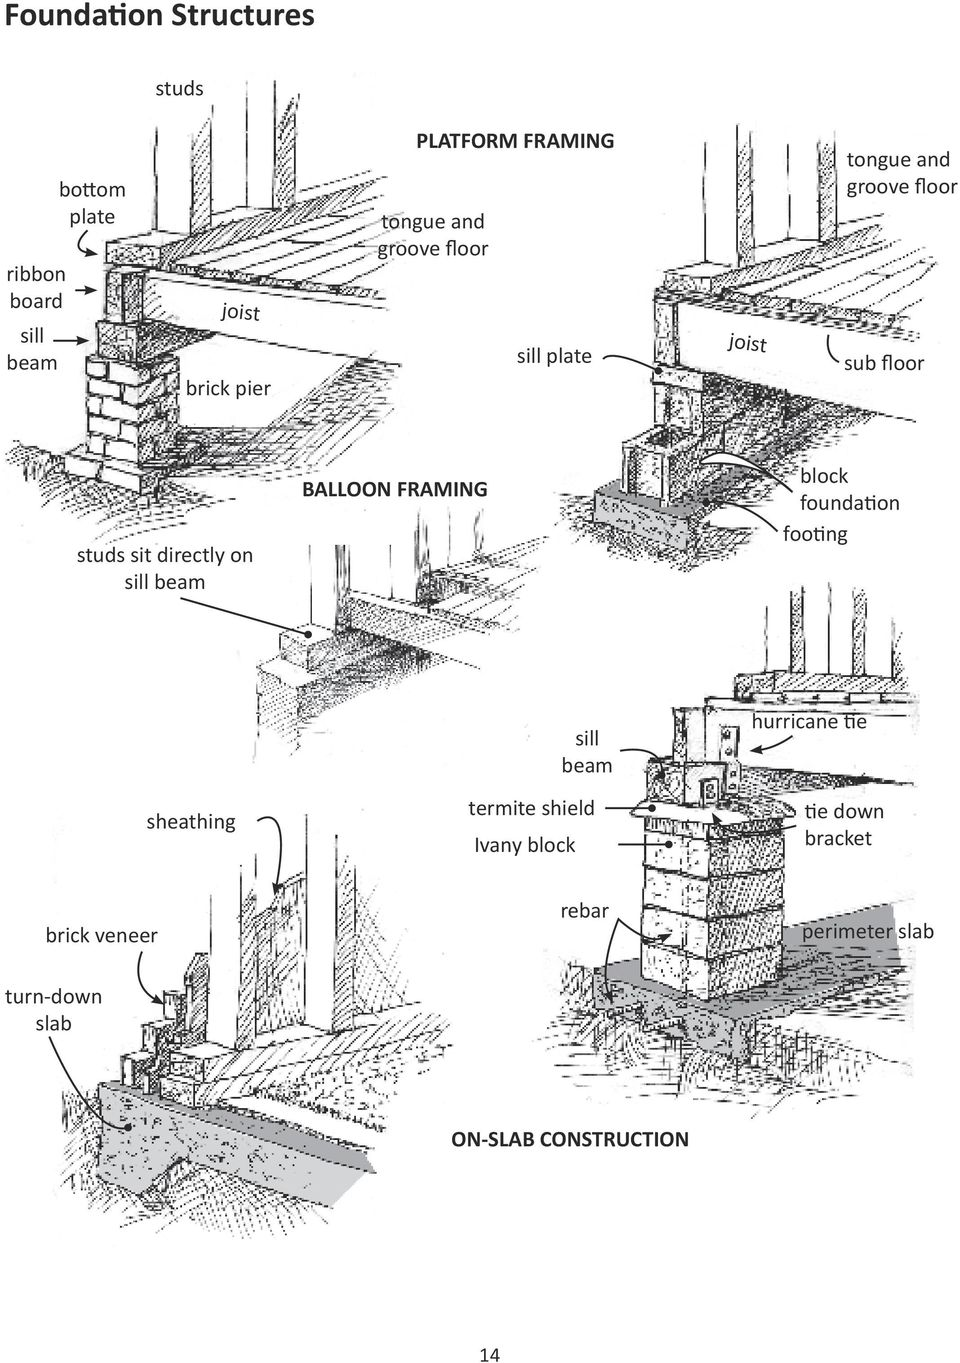 sill beam BALLOON FRAMING block foundation footing sheathing termite shield Ivany block sill beam